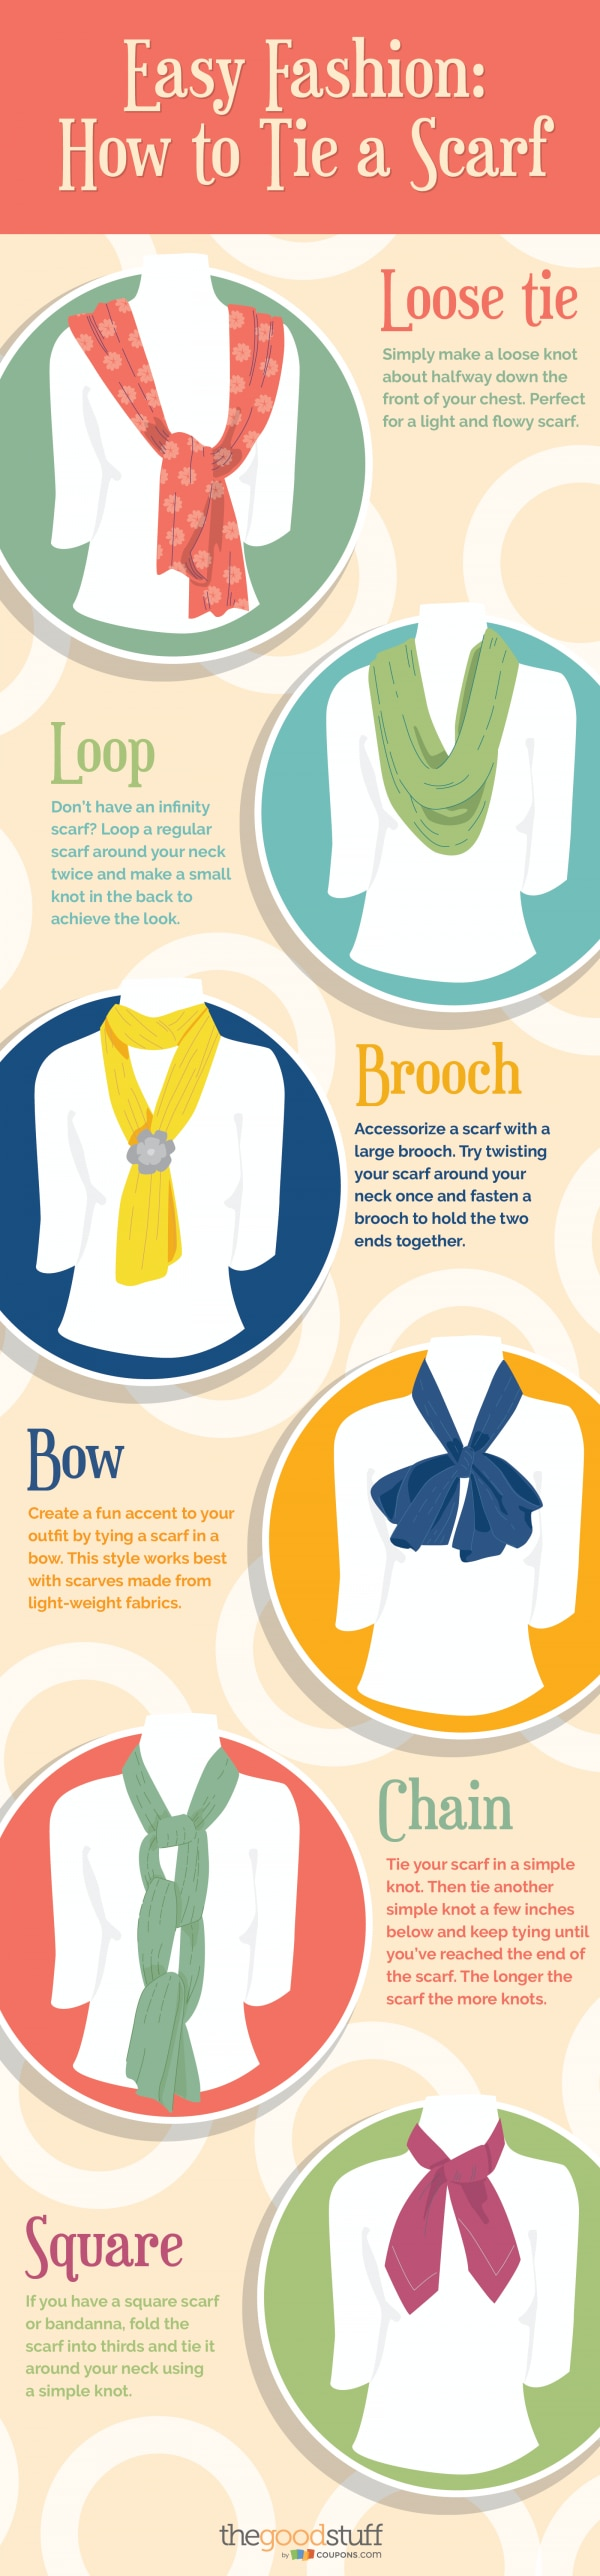 Easy fashion how to tie a scarf thegoodstuff easy fashion how to tie a scarf thegoodstuff ccuart Choice Image